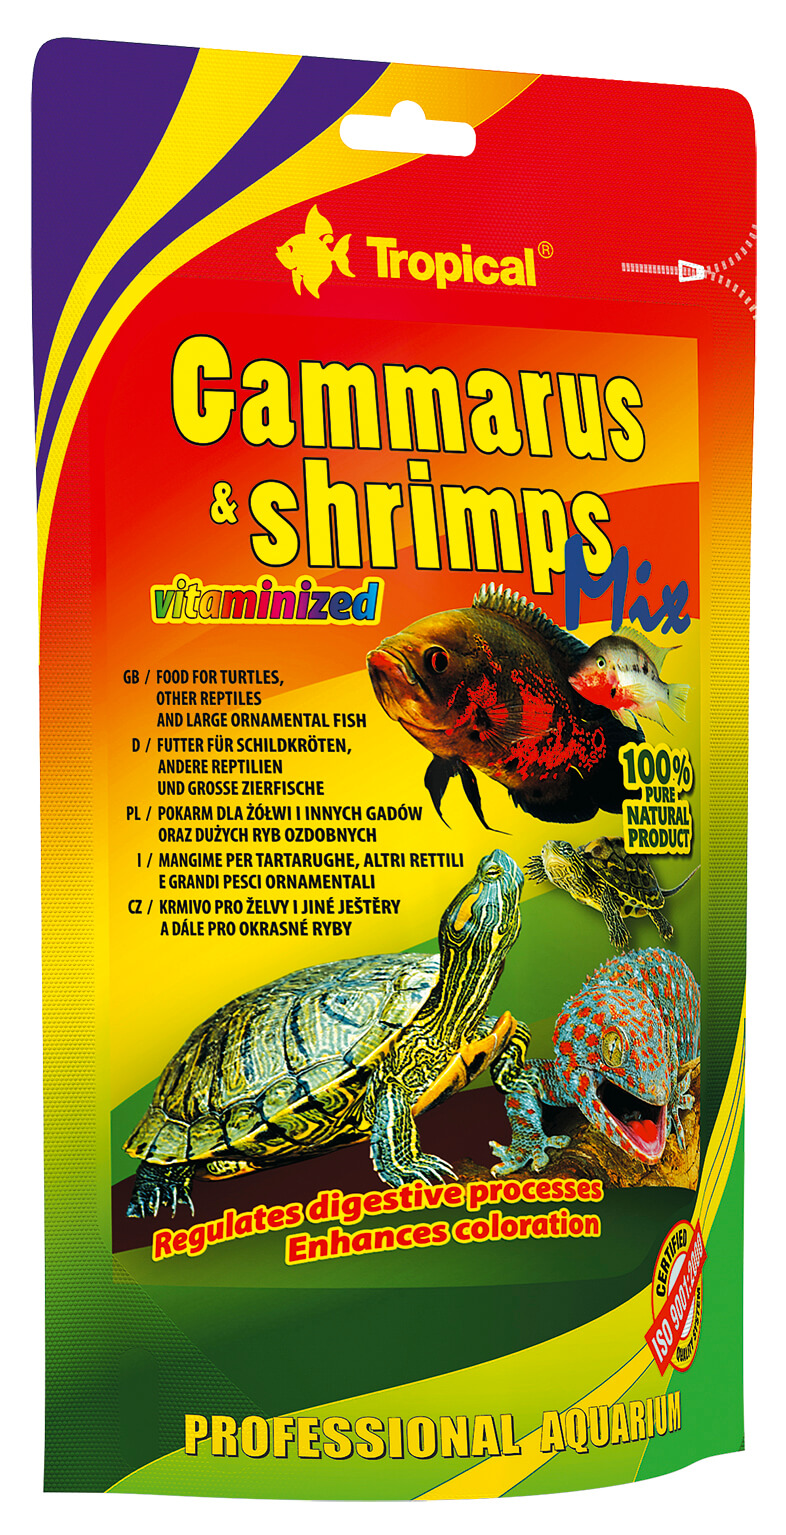 Tropical Gammarus&Shrimps Mix - 20g Pack